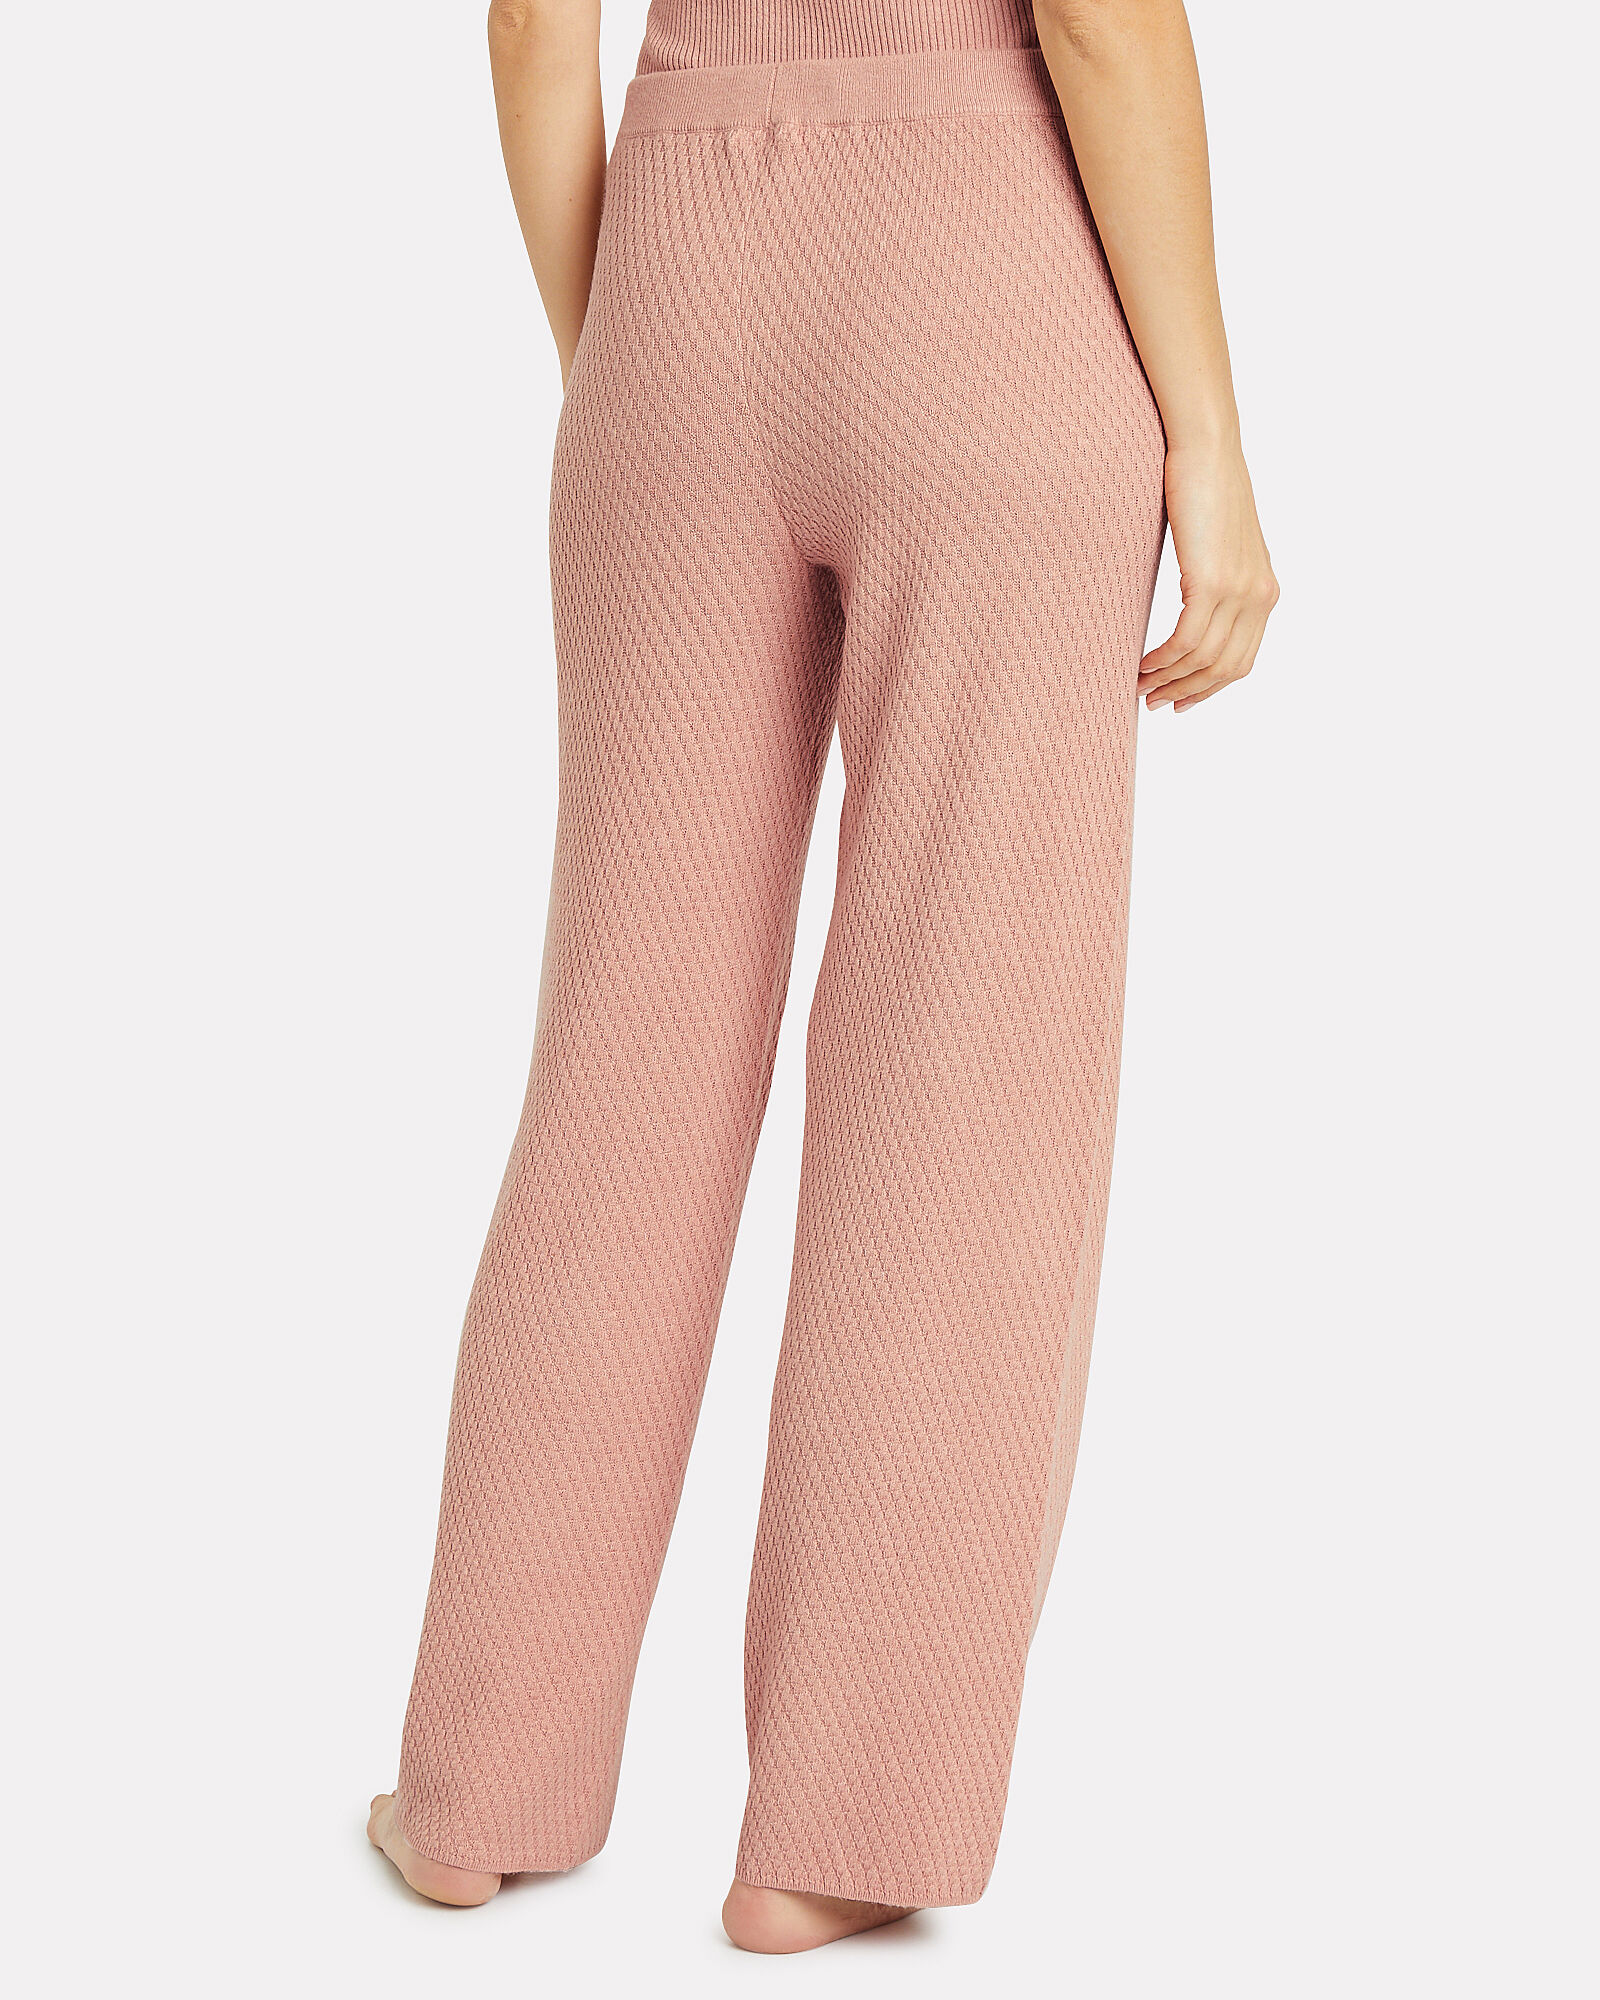 Kamala Knit Lounge Pants, TAN, hi-res